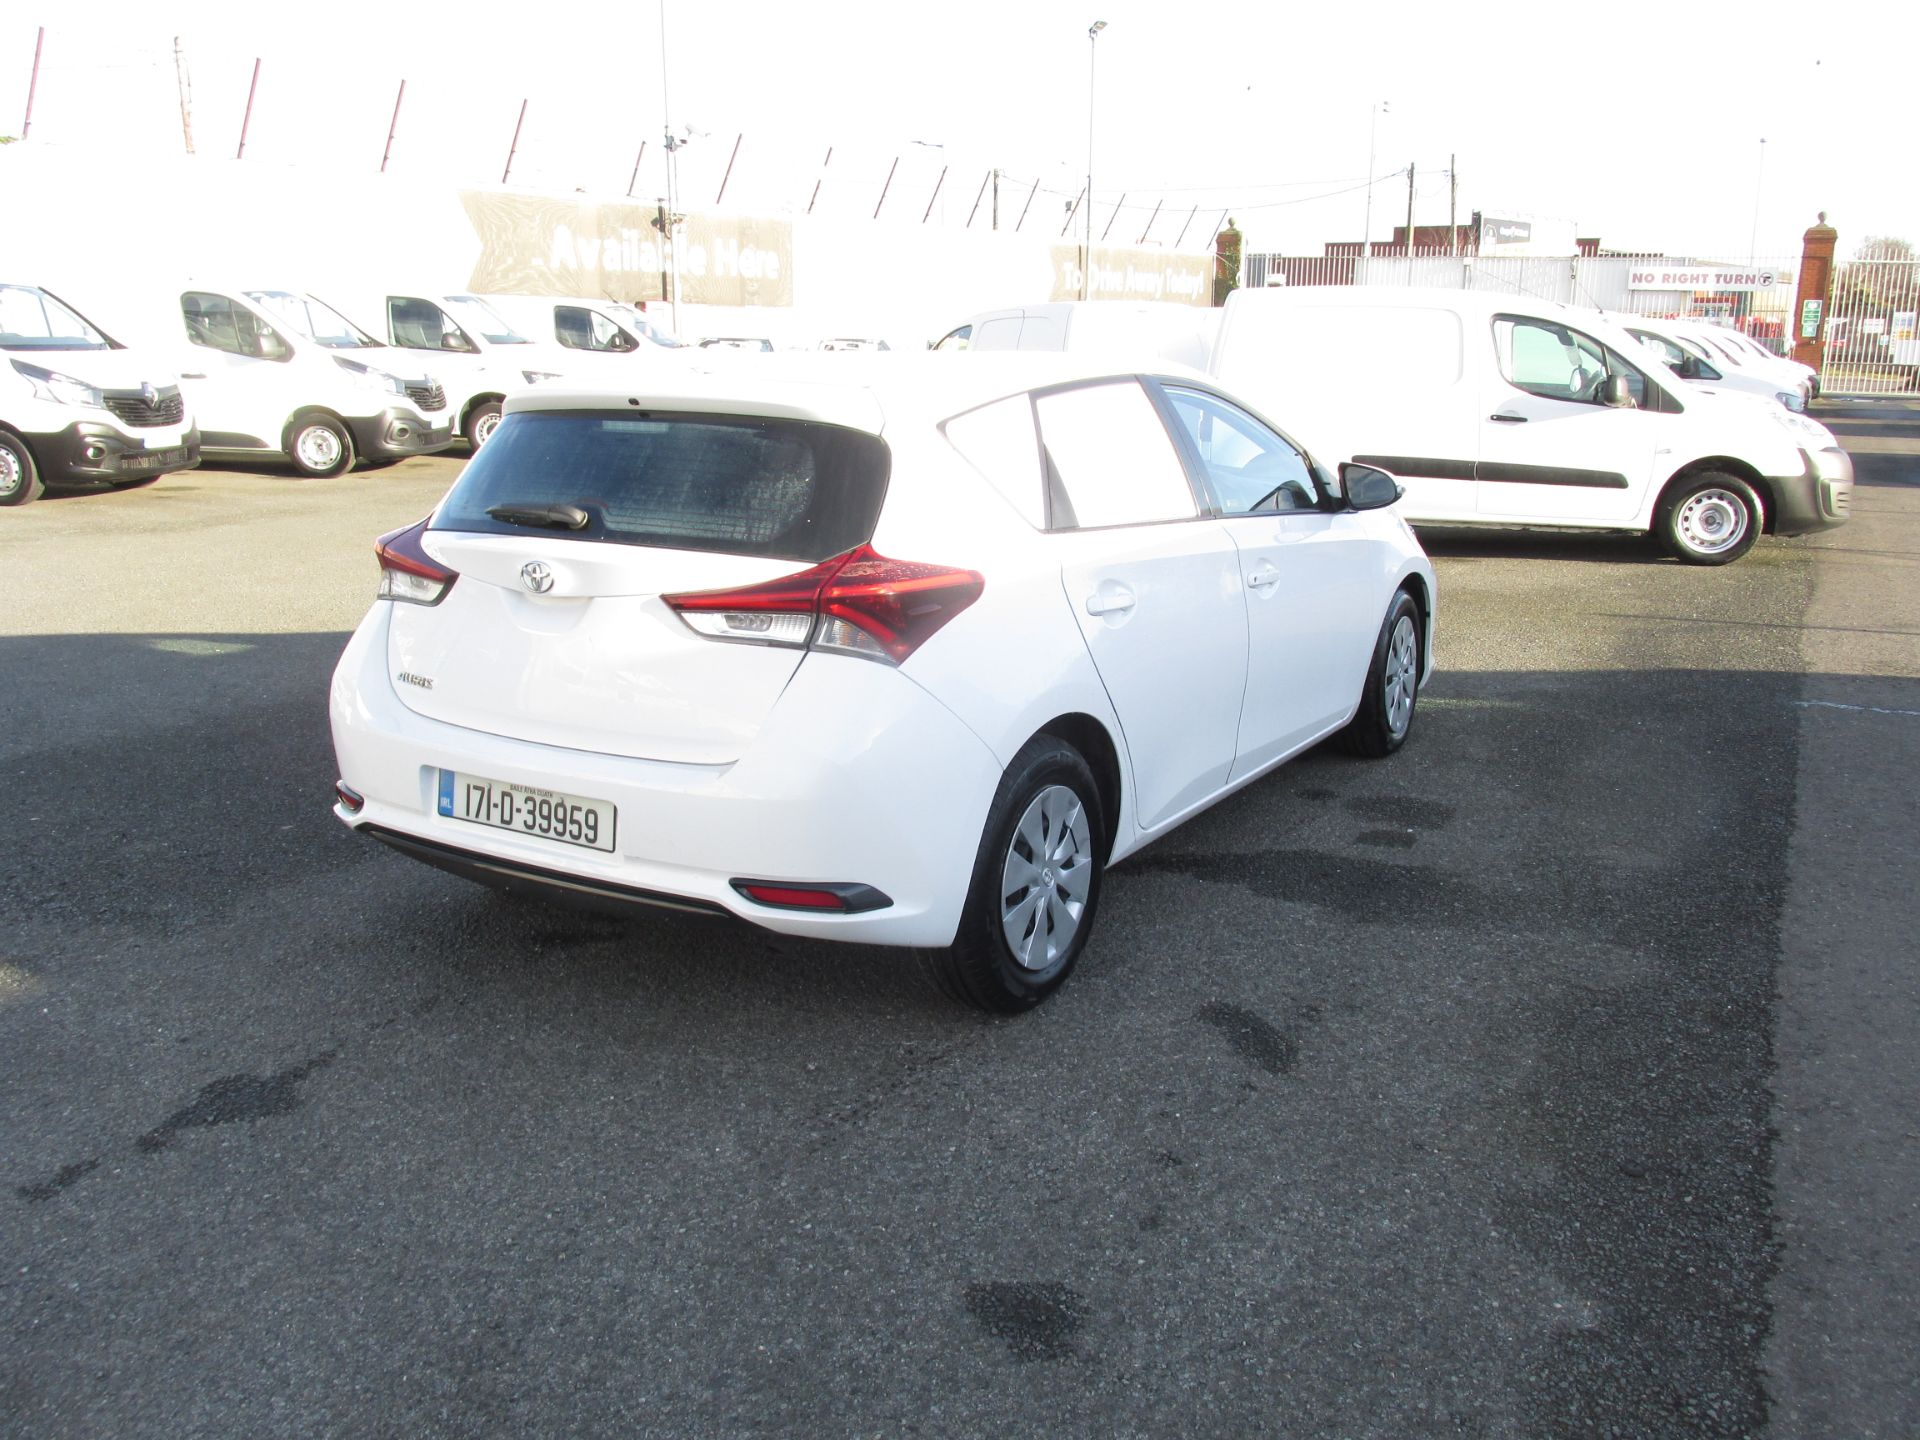 2017 Toyota Auris VAN 1.4 D4D Terra 4DR click and collect call sales for more info (171D39959) Image 6